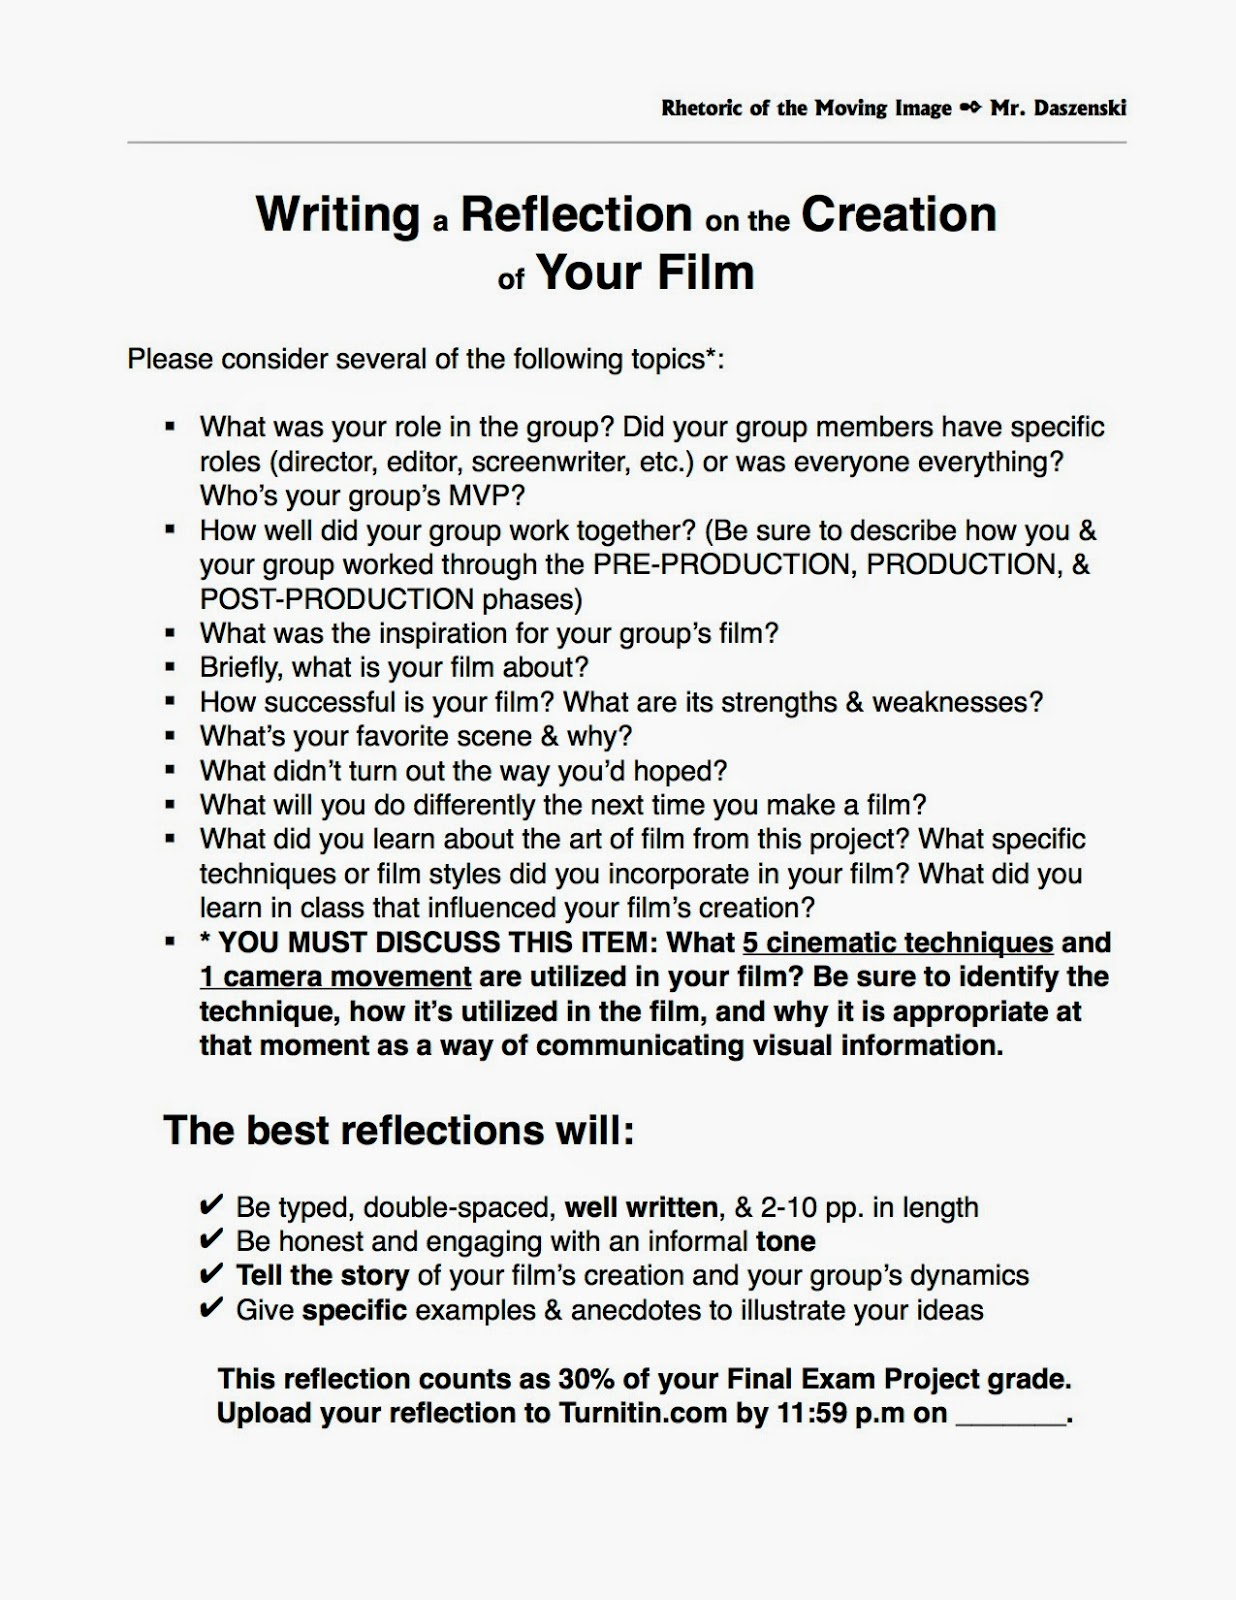 how to write a reflection on a project